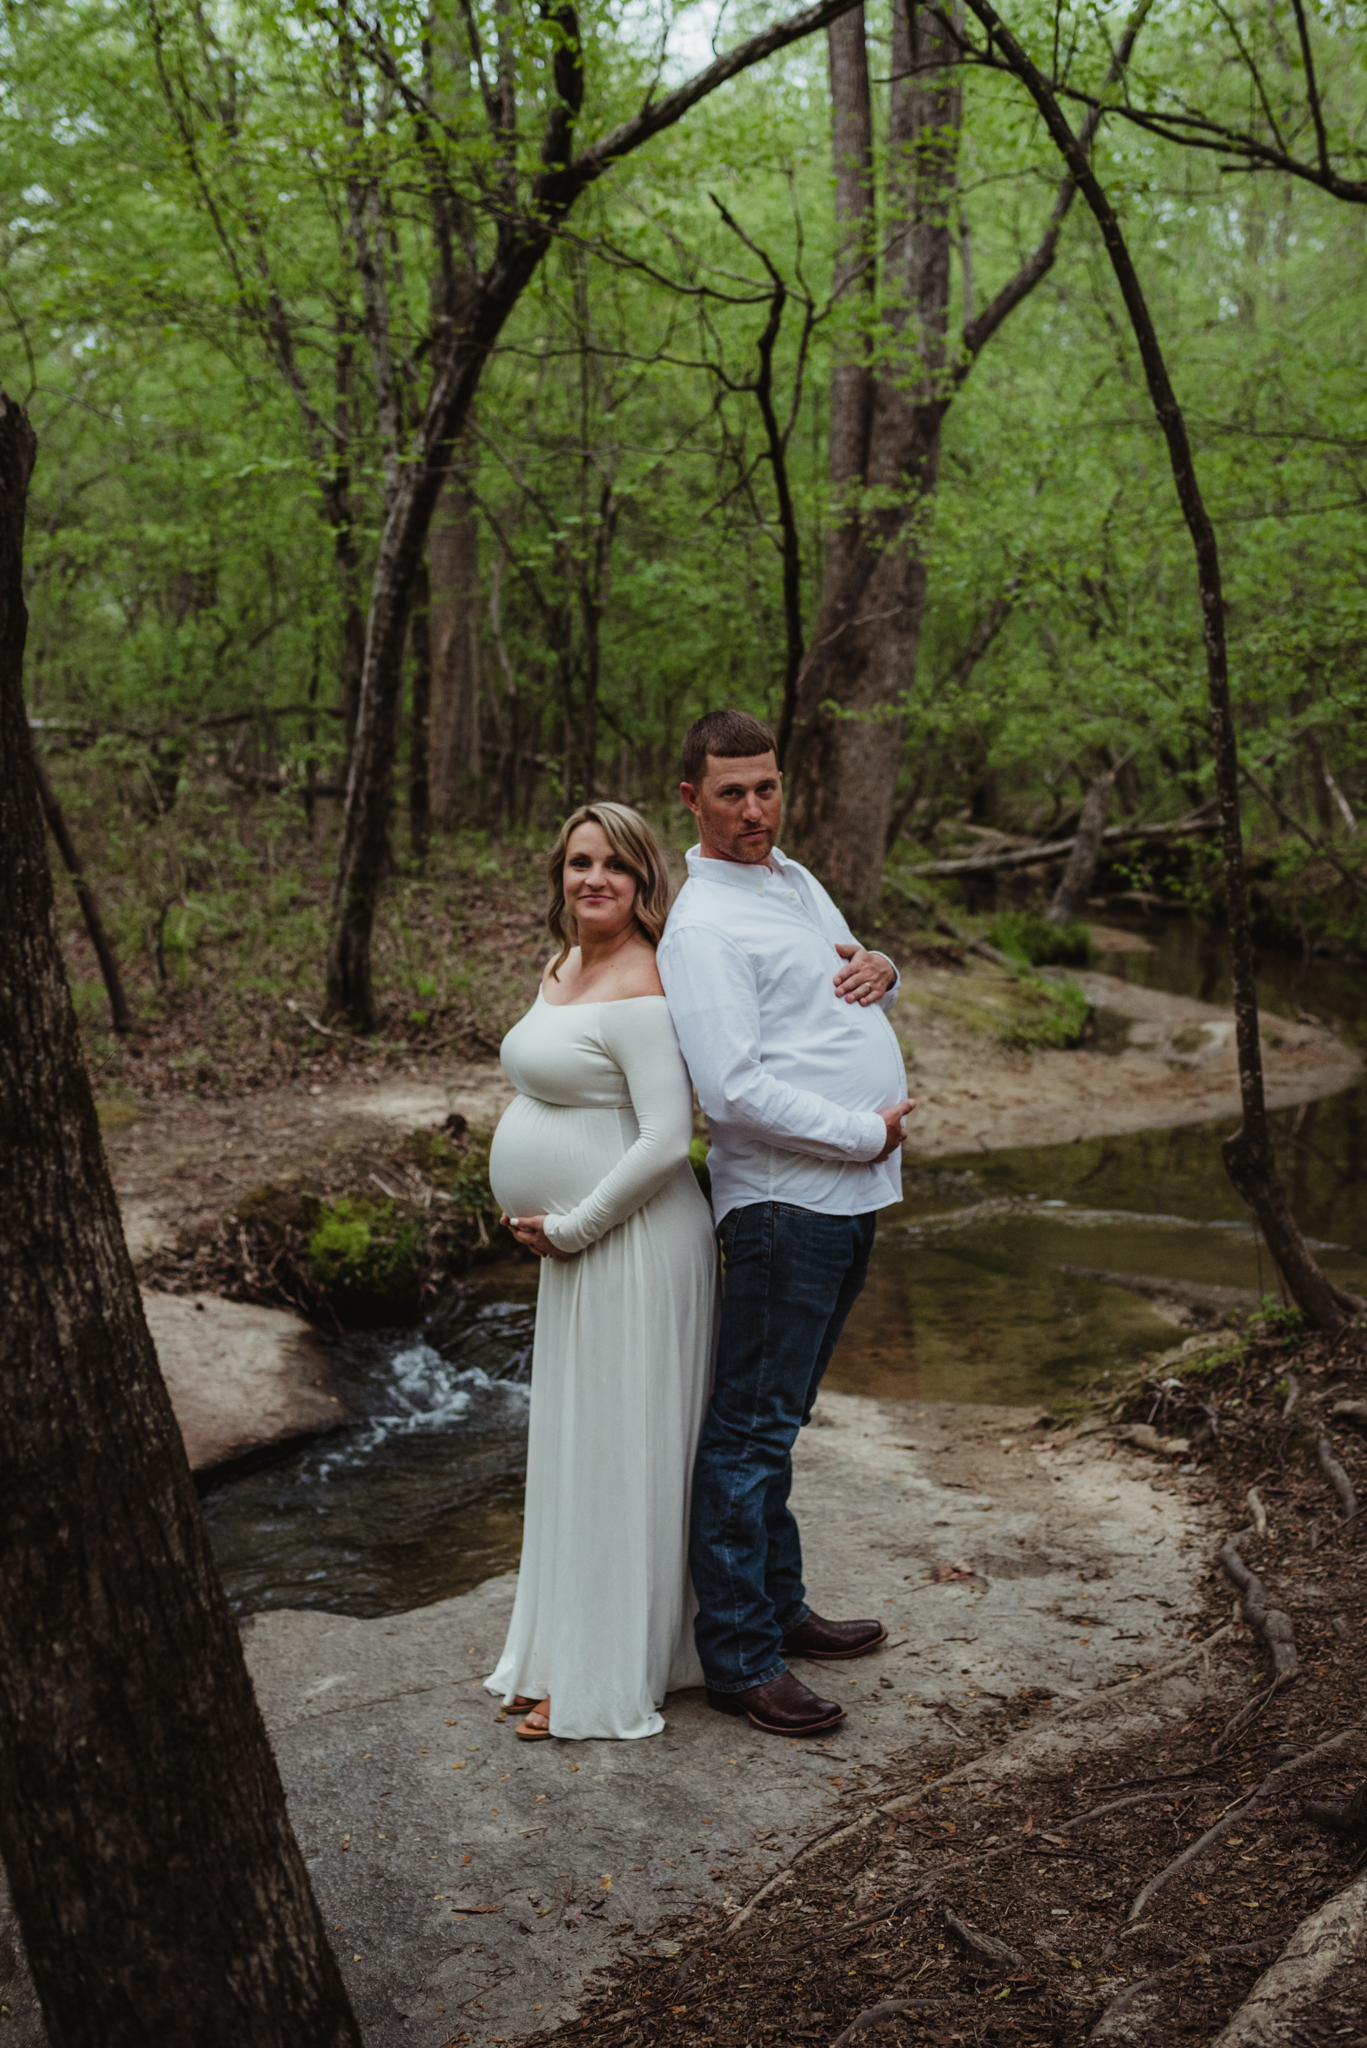 The soon to be parents show off both their bellies during their maternity shoot with Rose Trail Images at Mill Bridge Nature Park in Rolesville, NC.